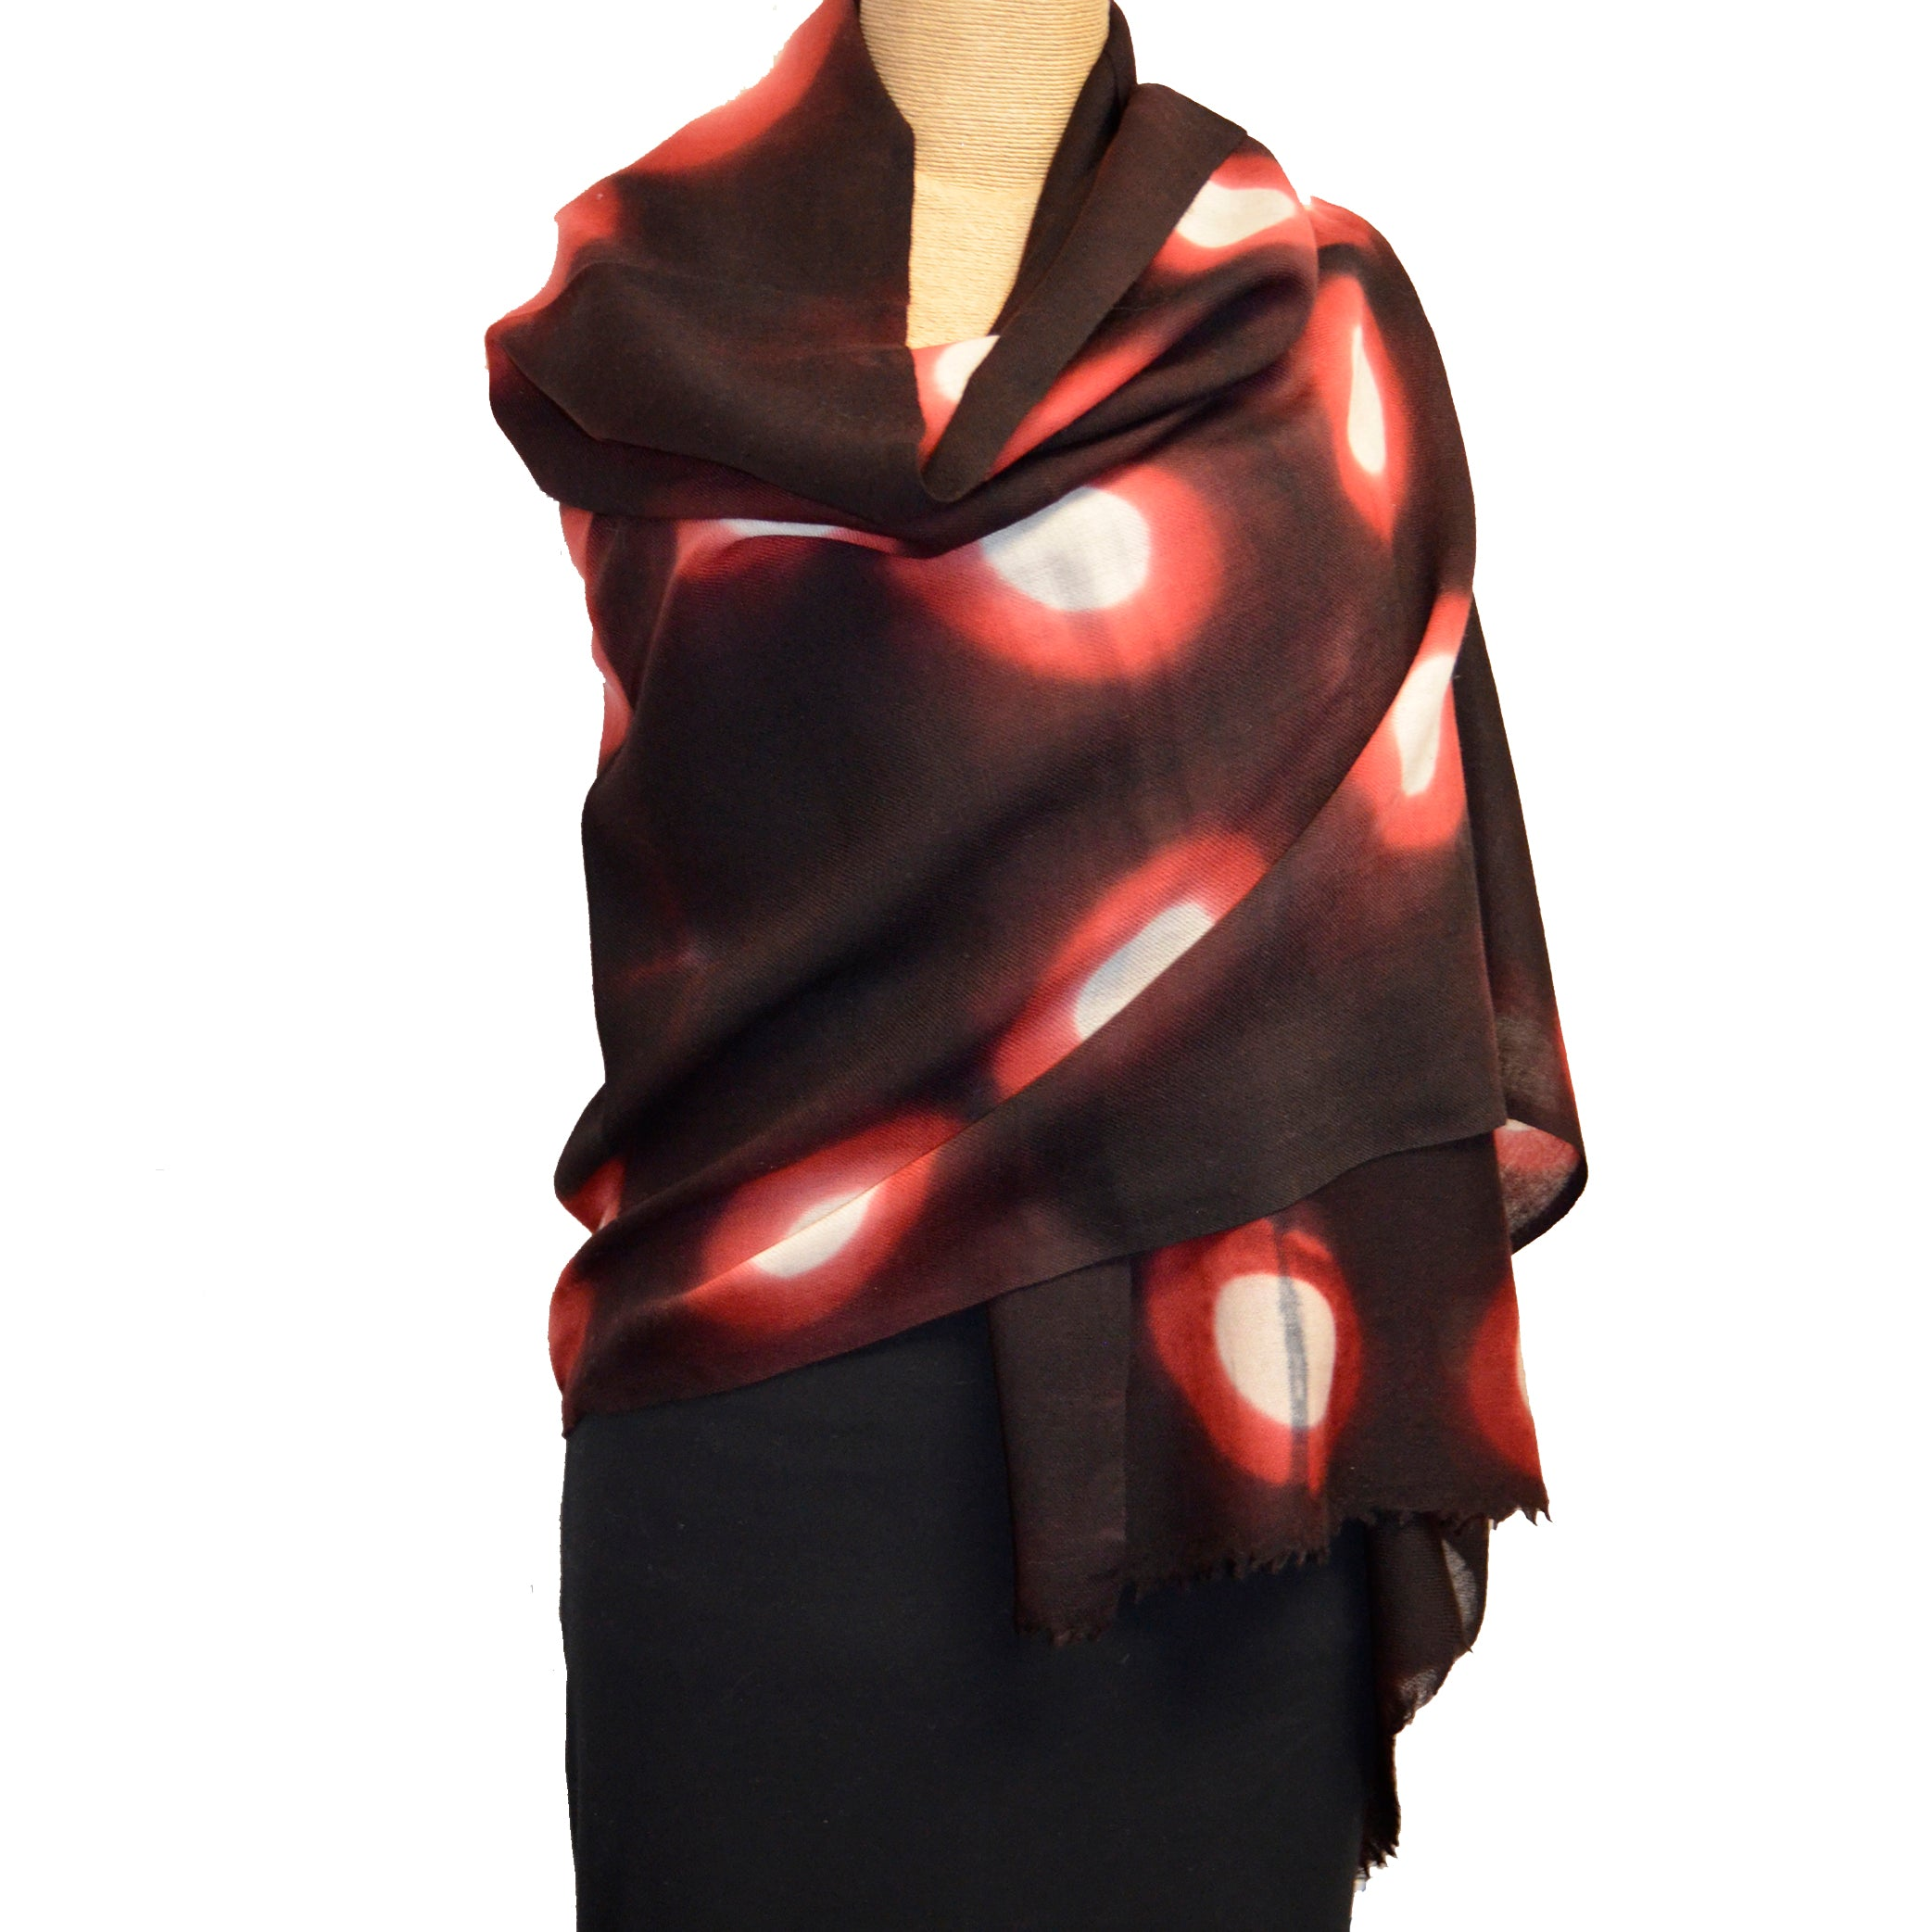 Nan Leaman Shawl, Itajime Shibori, Triangular Clamp, Black, Red, White